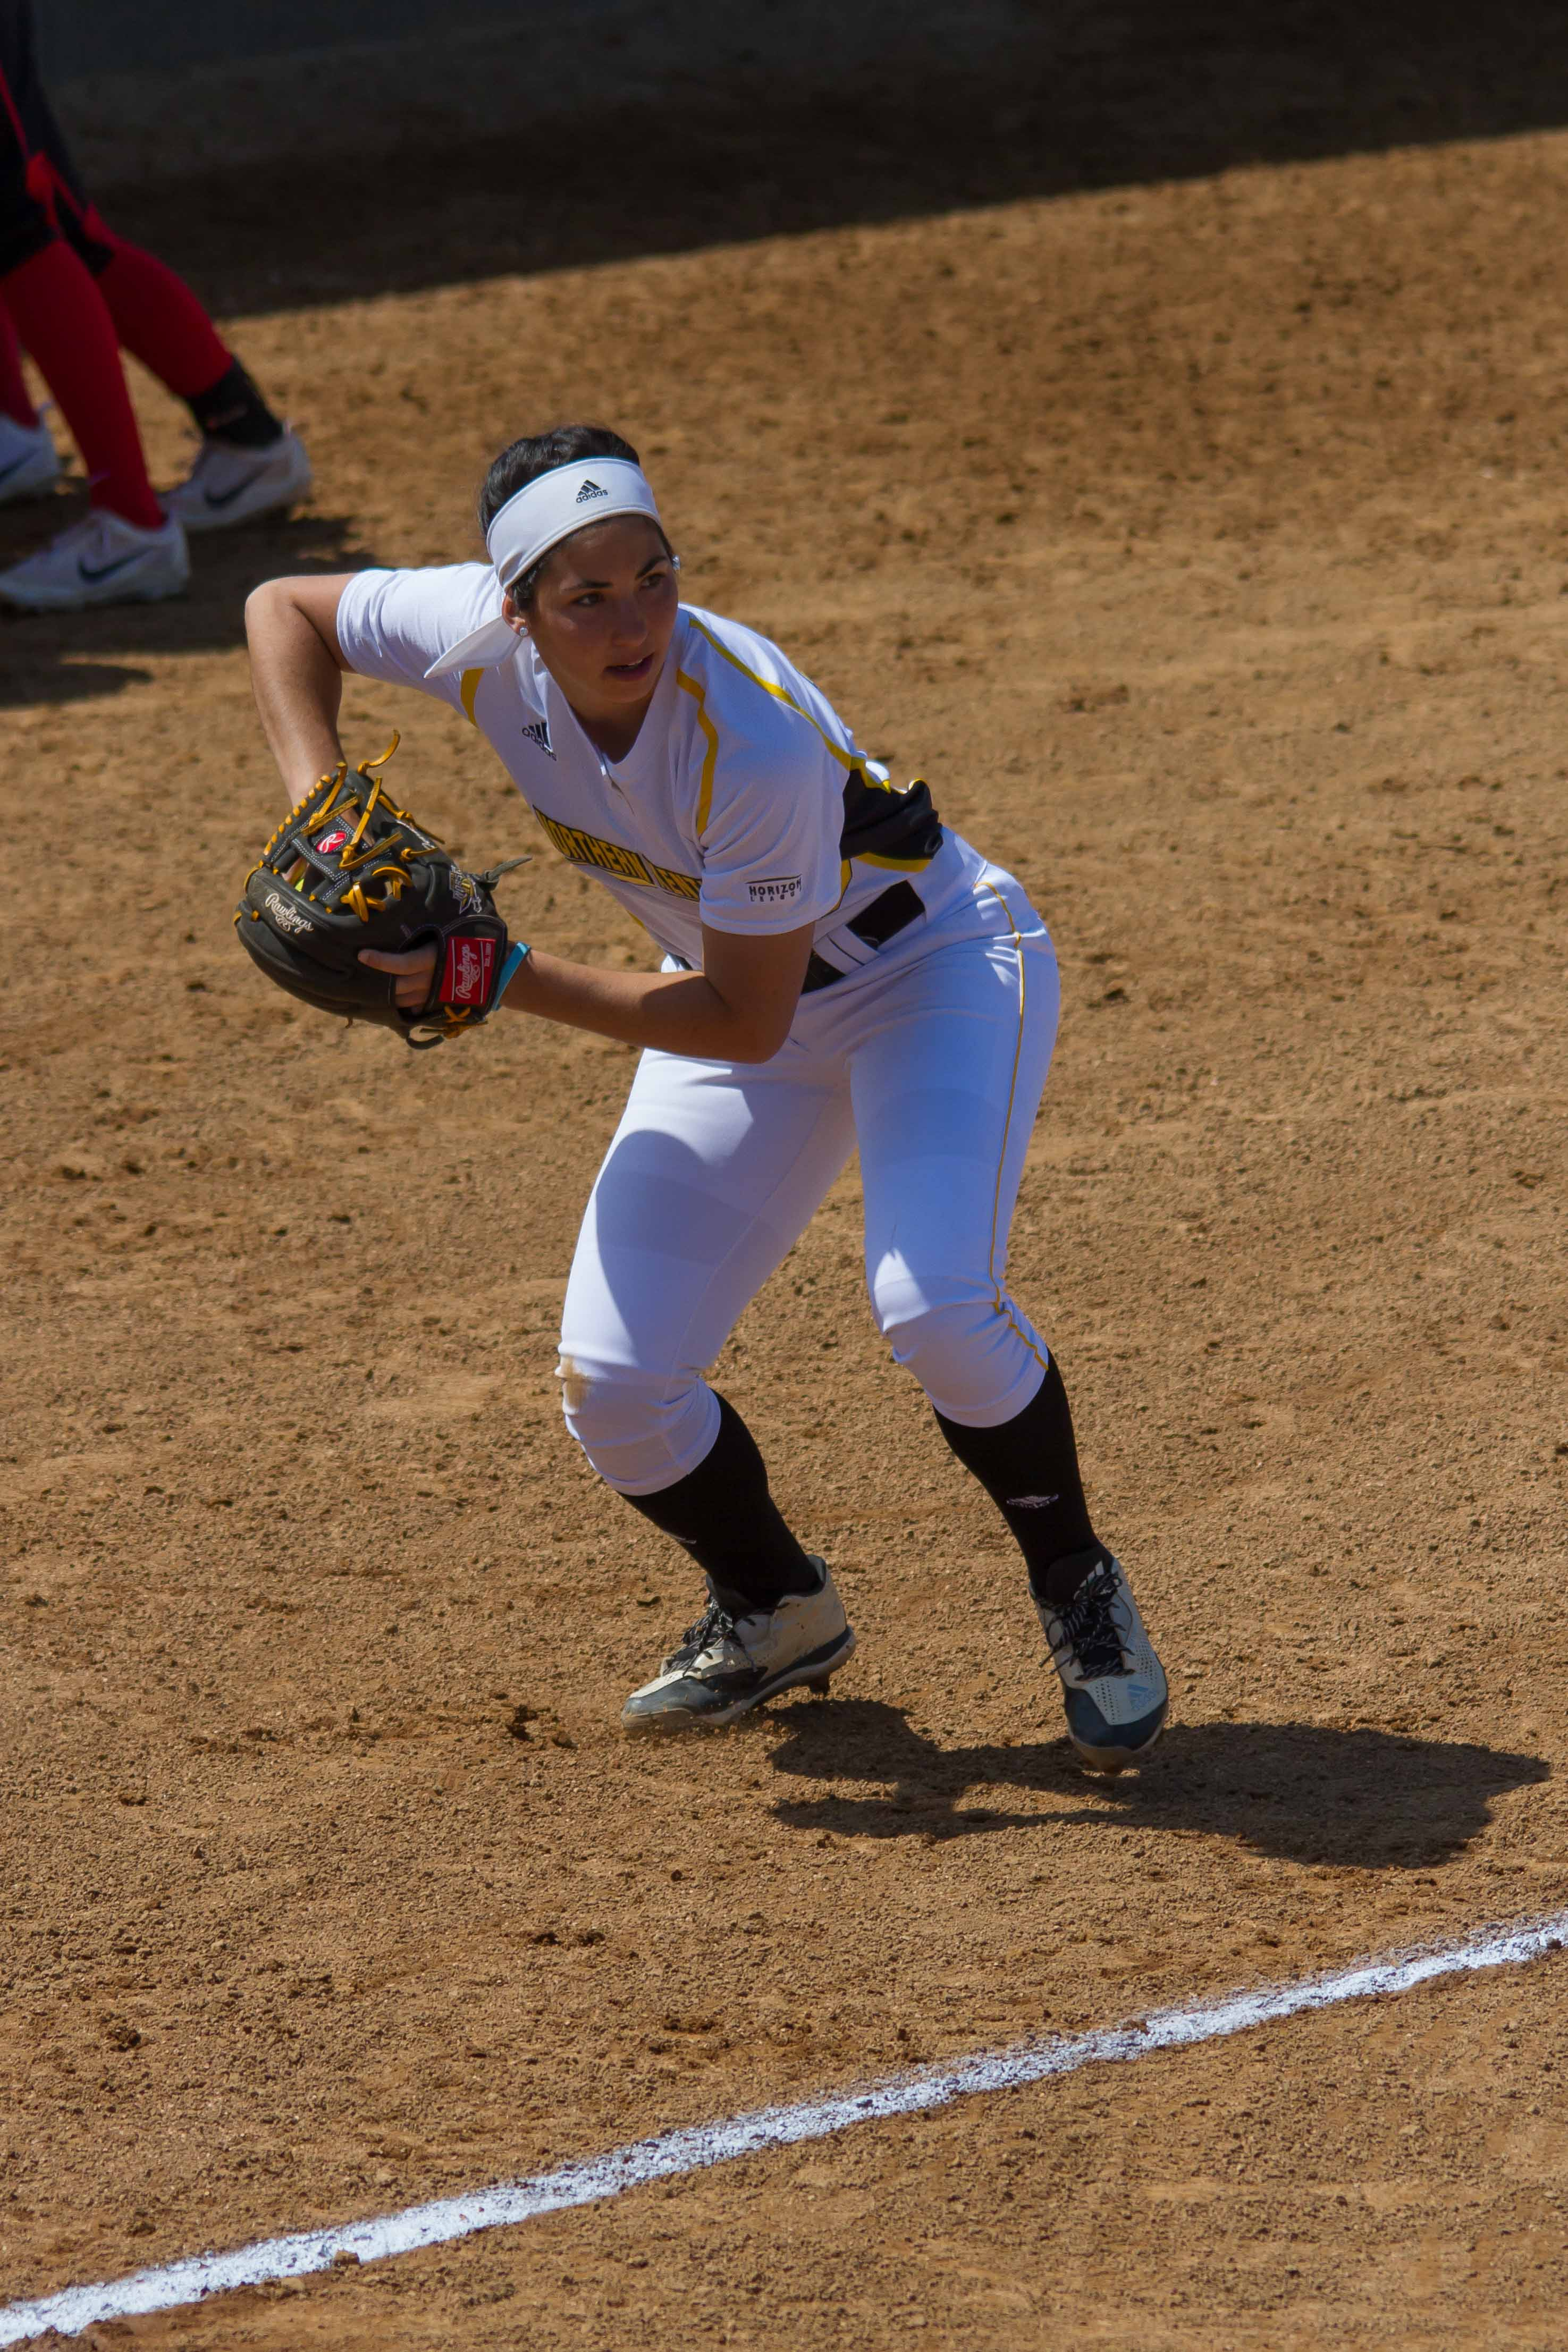 Sydney+Ferrante+takes+a+ground+ball+between+innings+in+NKU%27s+game+with+YSU+Wednesday